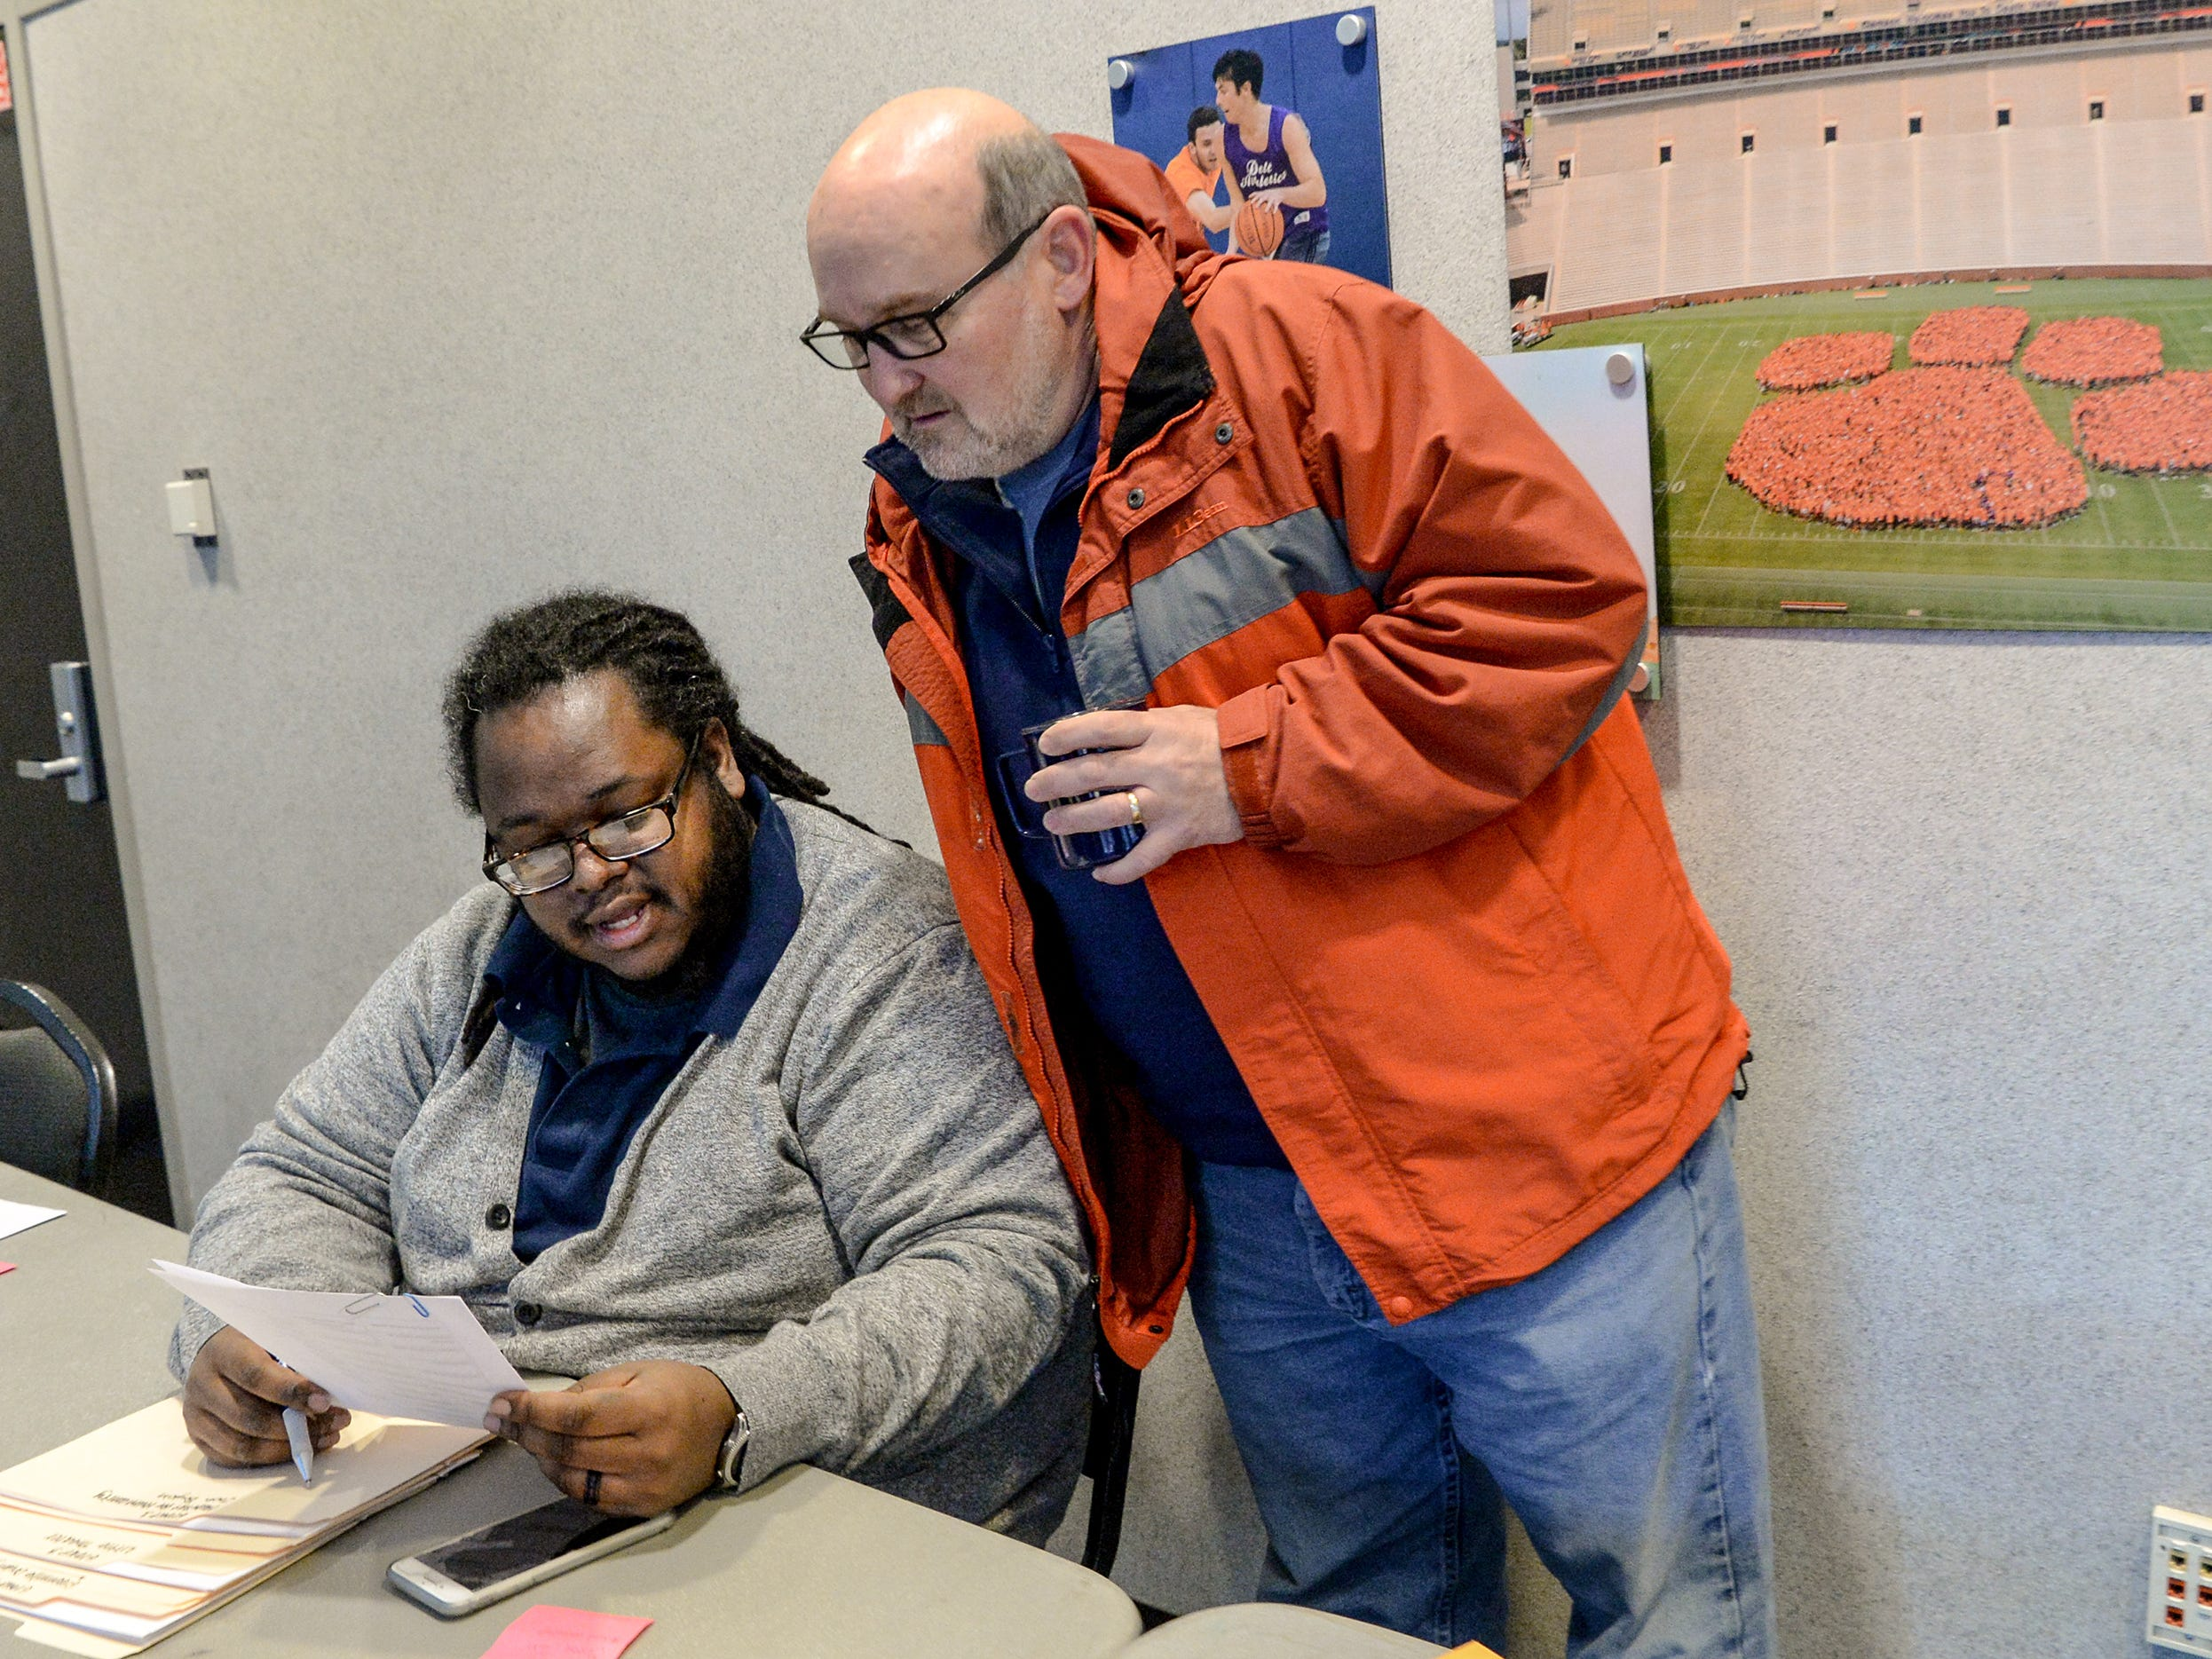 Jerad Green, left, Clemson University Associate Director for Multicultural Programs, and Chris Heavner, Clemson University Lutheran Campus Pastor, help students with assignments at the Hendrix Student Center, during the Clemson University Martin Luther King, Jr. Service Day in Clemson January 21, 2019.